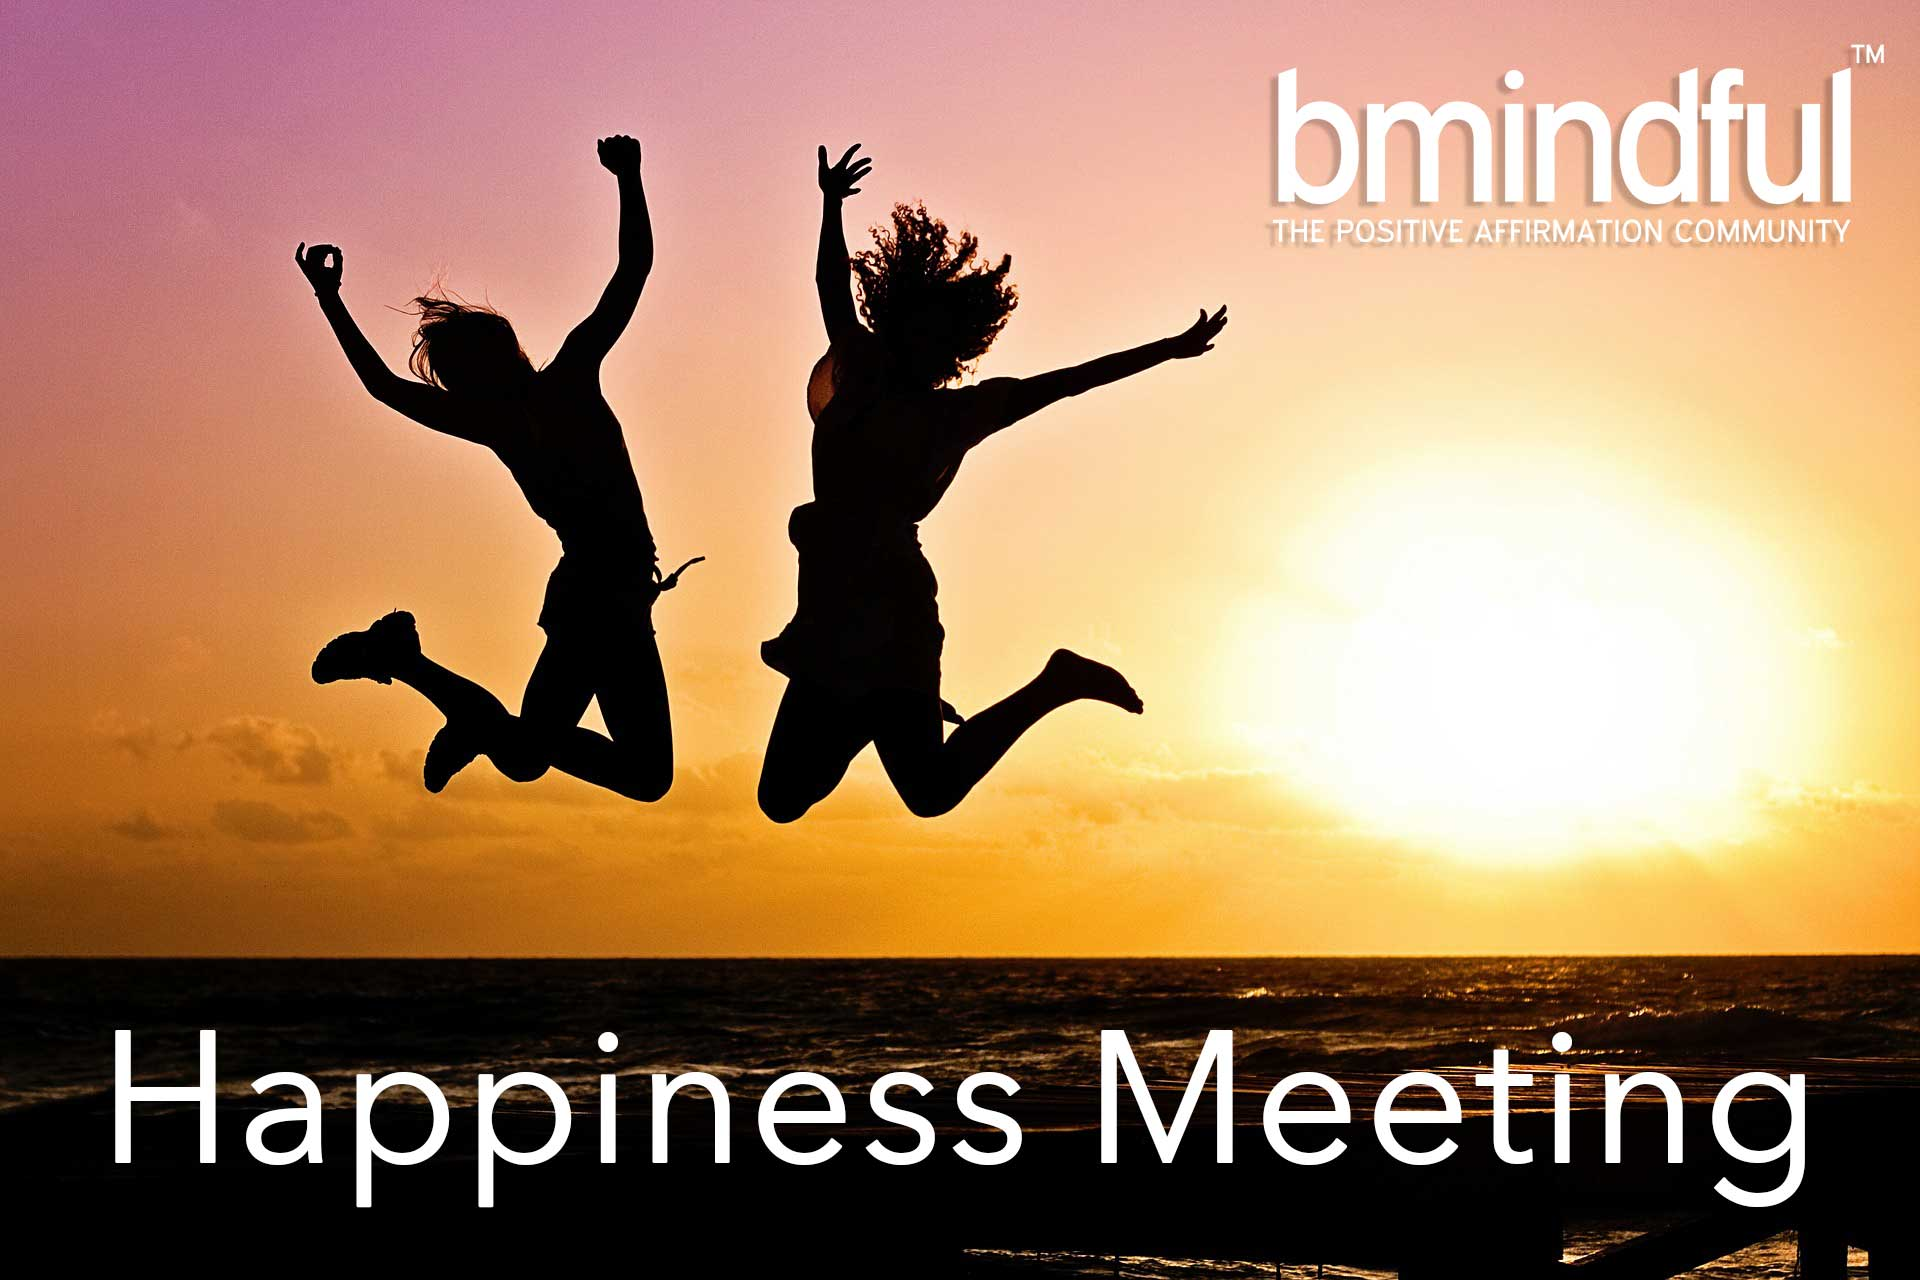 happiness-meeting-sample2.jpg